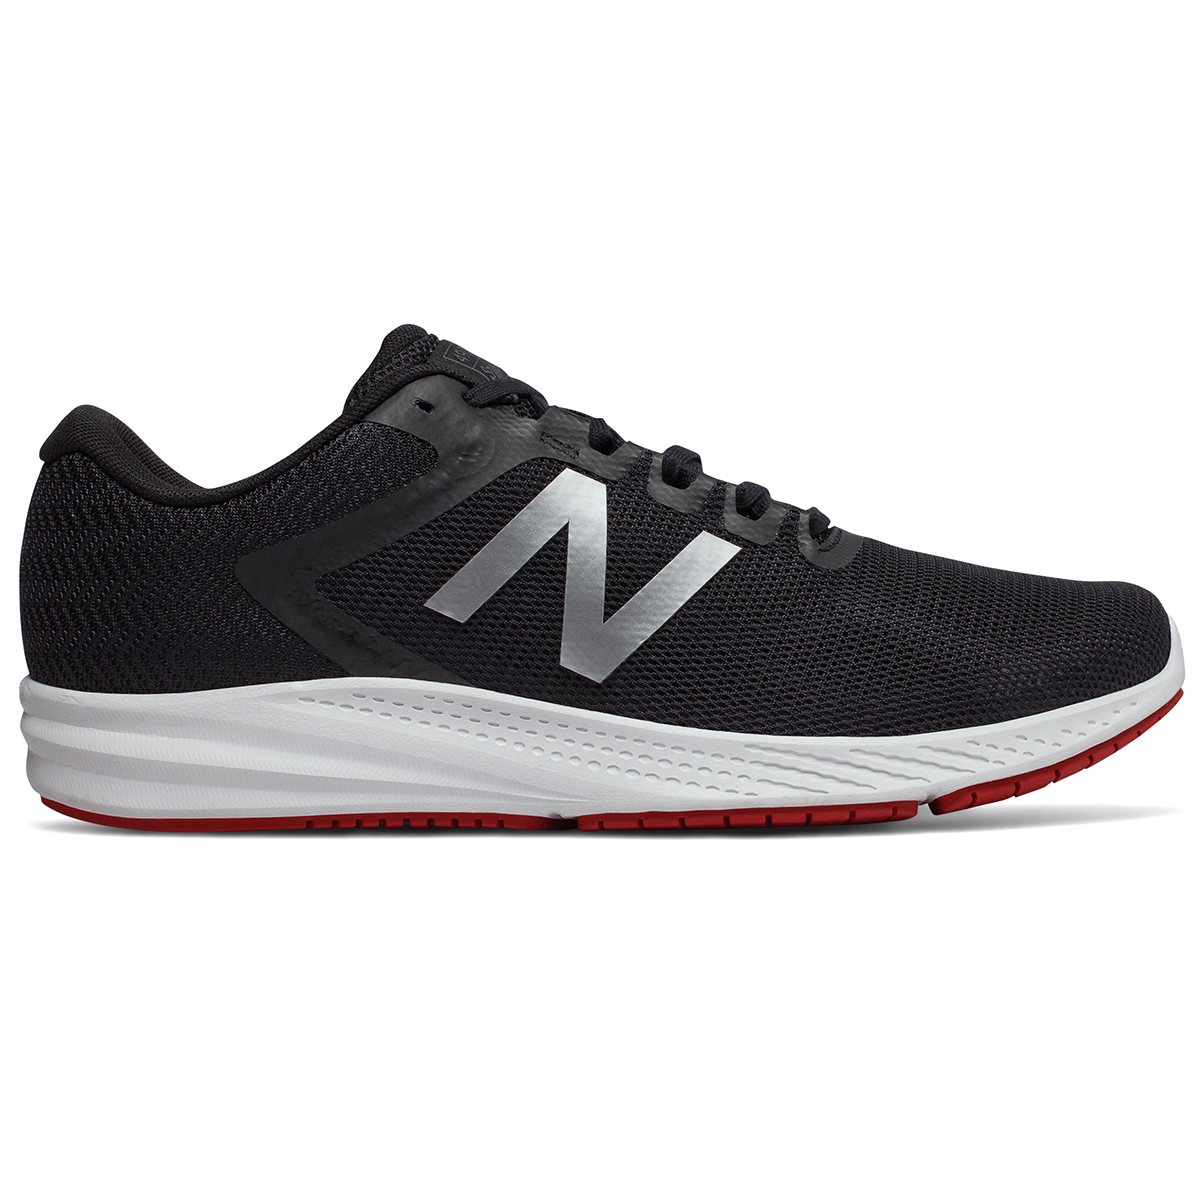 New Balance Men's 490V6 Running Shoes, Wide - Black, 8.5